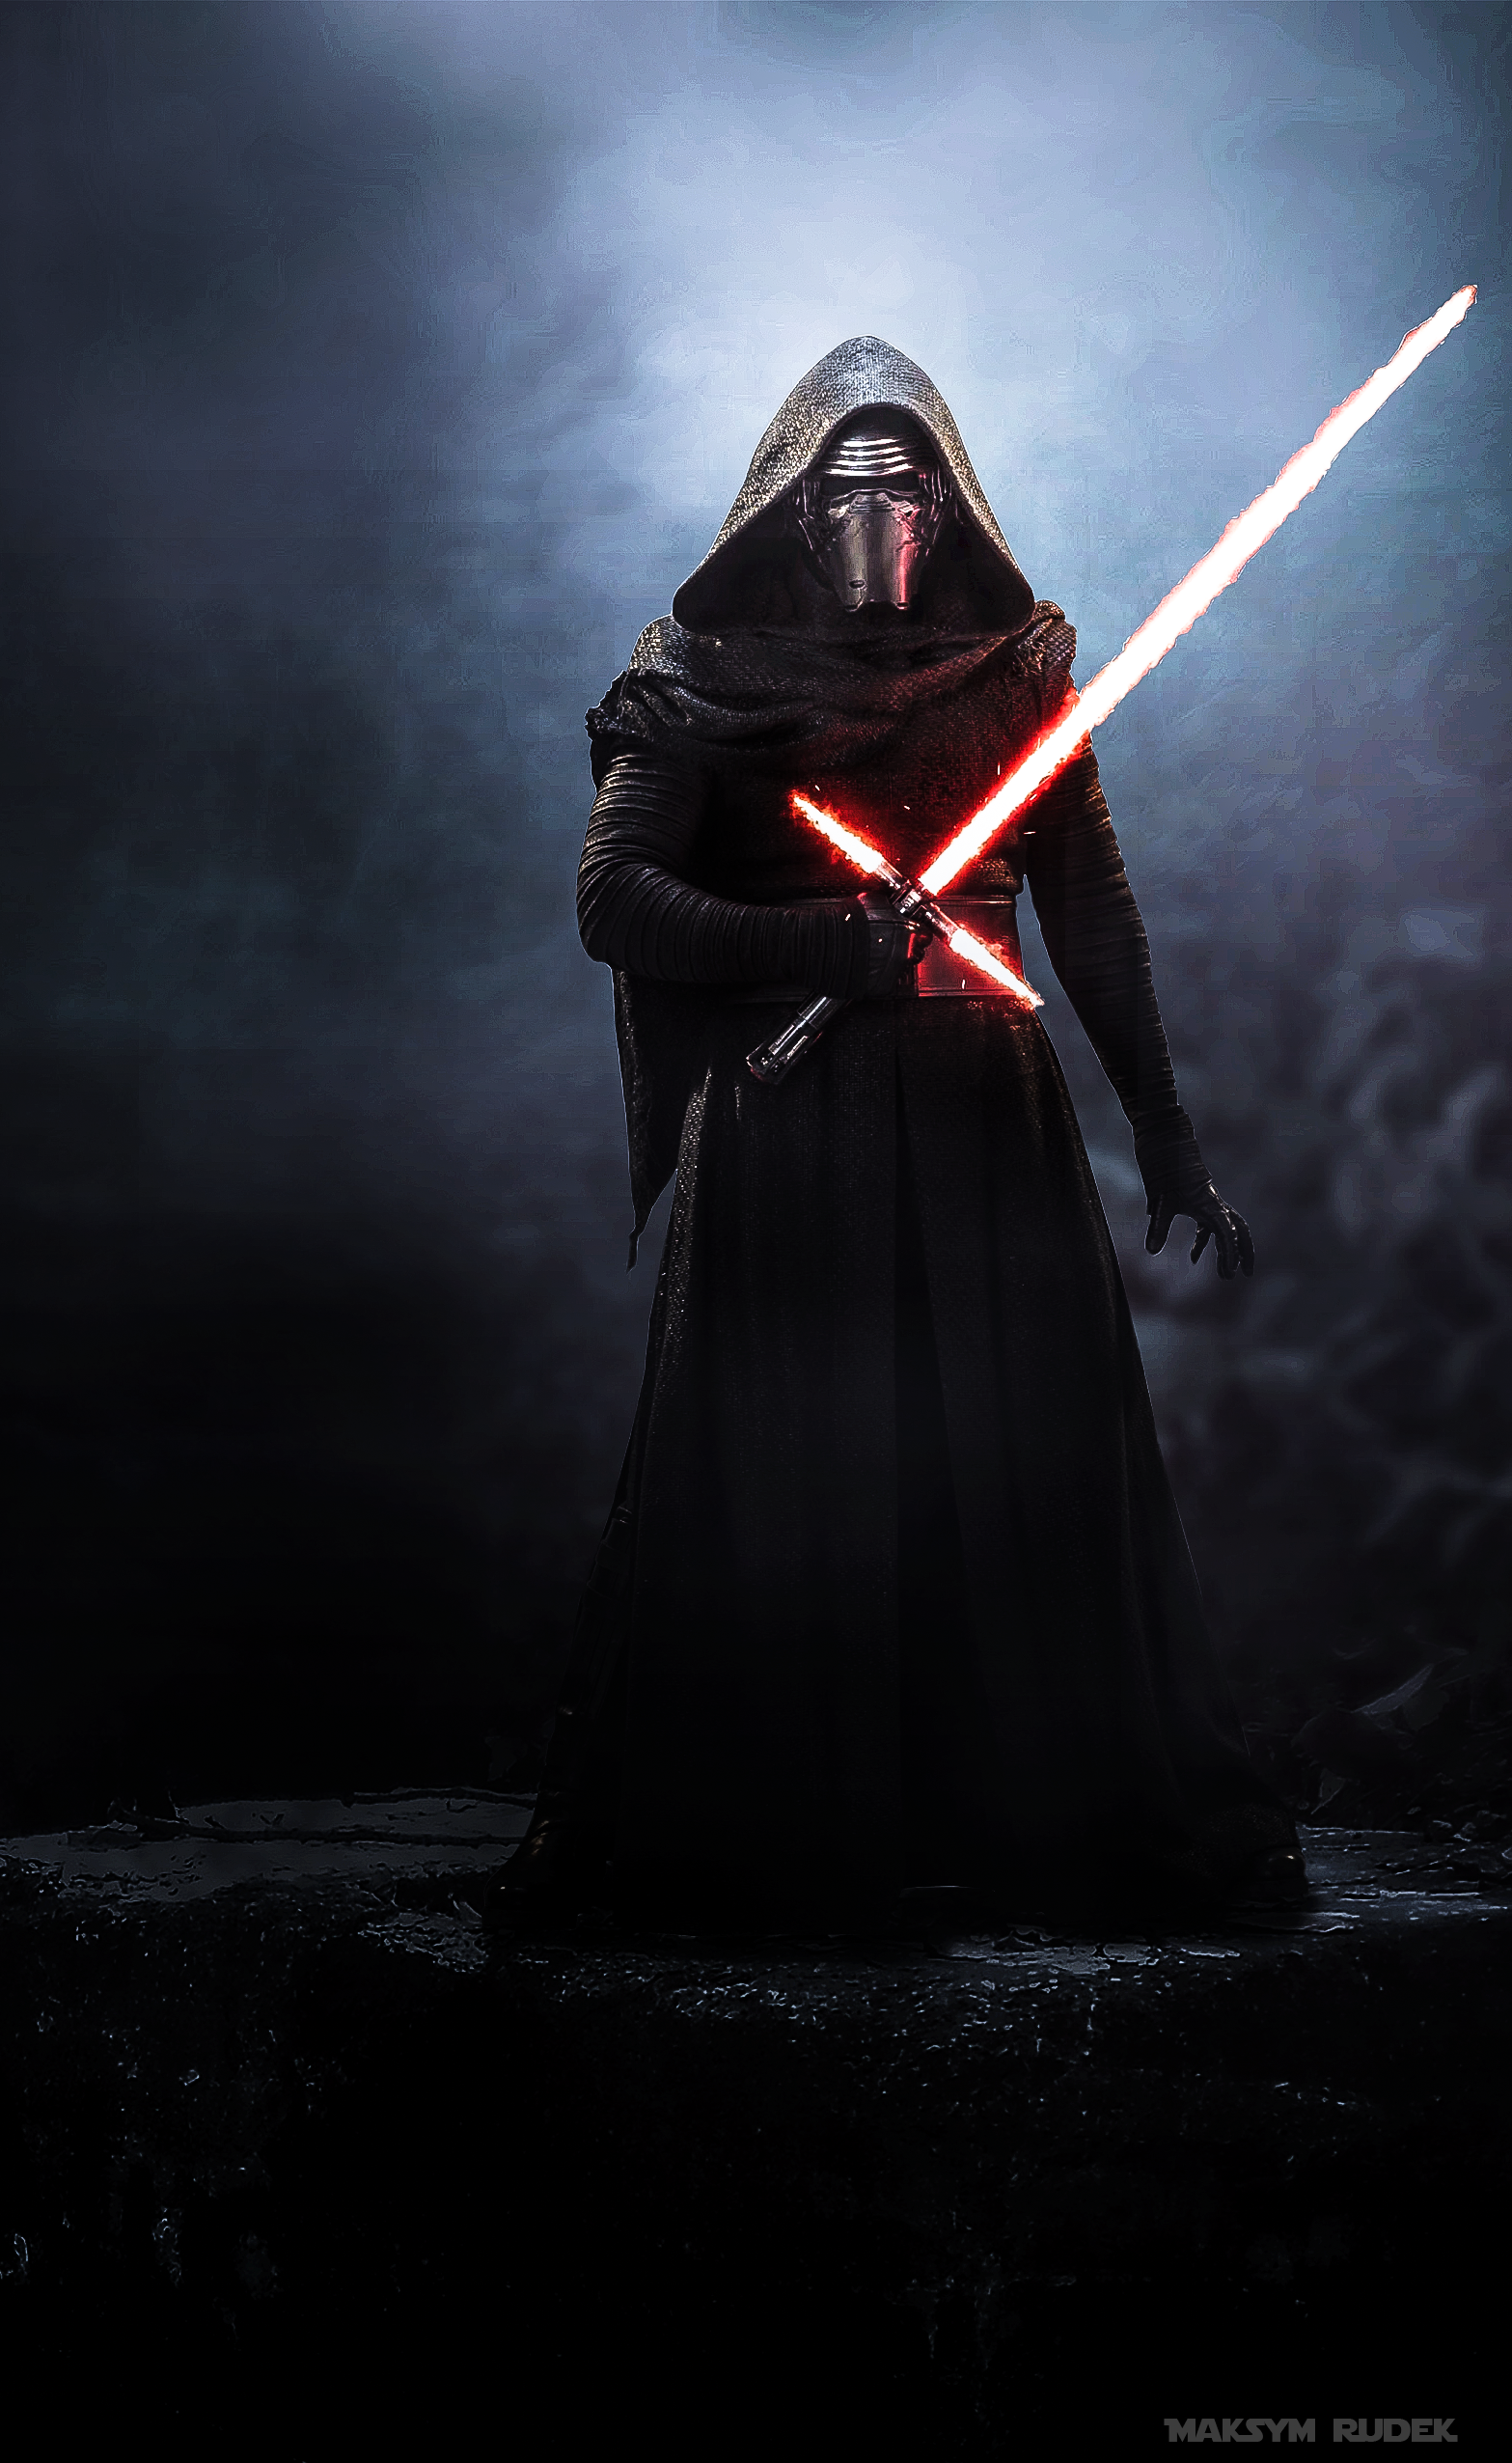 Kylo Ren Smartphone Wallpaper Ren Star Wars Kylo Ren Wallpaper Star Wars Wallpaper Iphone